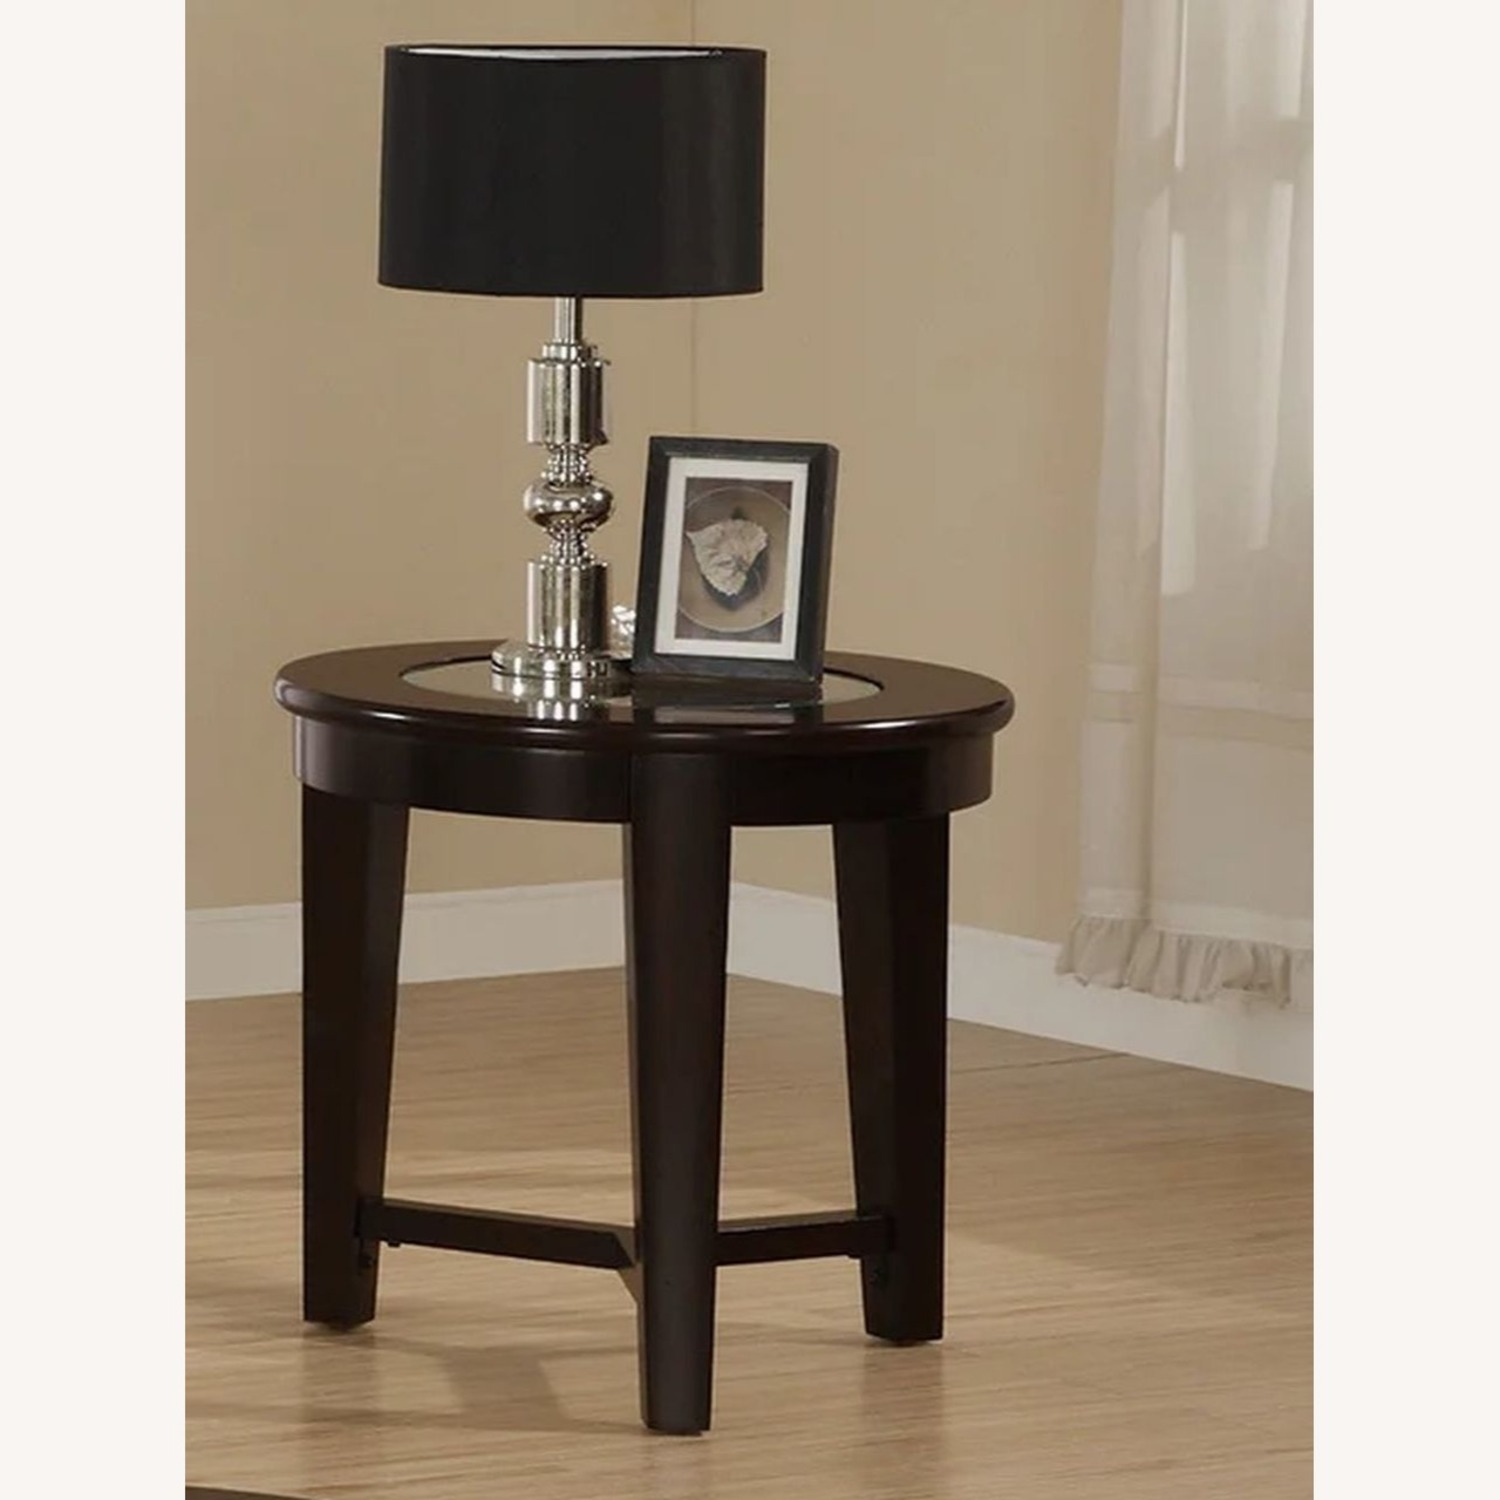 3-Piece Occasional Set In Cappuccino Finish - image-2